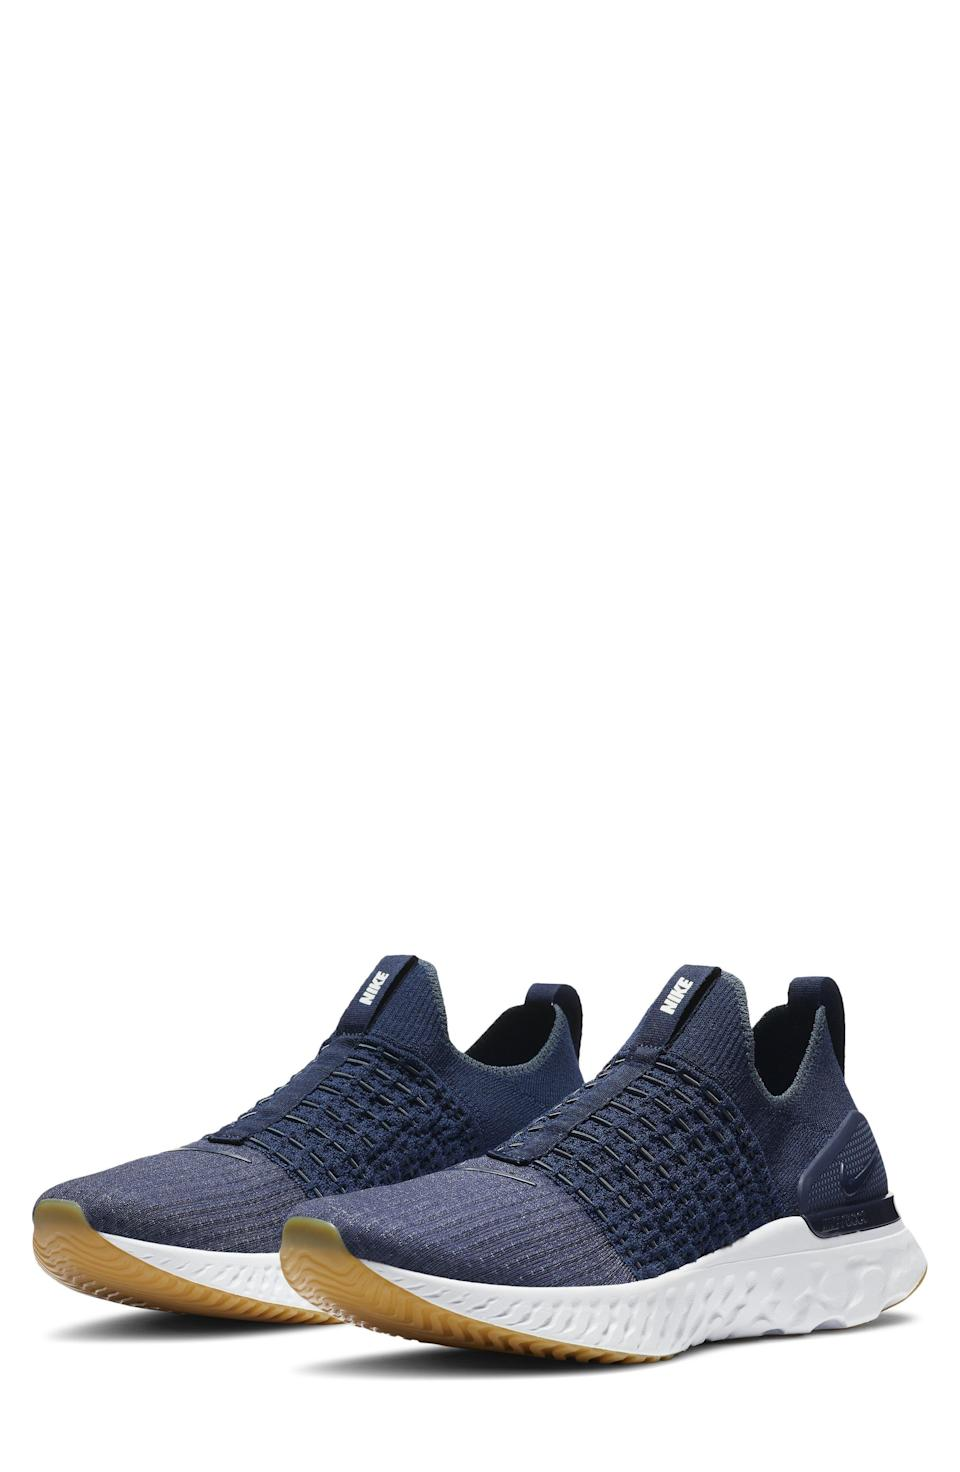 """<p><strong>NIKE</strong></p><p>nordstrom.com</p><p><a href=""""https://go.redirectingat.com?id=74968X1596630&url=https%3A%2F%2Fwww.nordstrom.com%2Fs%2Fnike-react-phantom-run-flyknit-2-running-shoe-men%2F5464706&sref=https%3A%2F%2Fwww.menshealth.com%2Fstyle%2Fg37081969%2Fnordstroms-anniversary-sale-best-sneakers%2F"""" rel=""""nofollow noopener"""" target=""""_blank"""" data-ylk=""""slk:BUY IT HERE"""" class=""""link rapid-noclick-resp"""">BUY IT HERE</a></p><p><del>$140</del><br><strong>$99.90</strong><strong><br></strong></p><p>The brand mixed its signature FlyKnit uppers with a Nike React foam sole, which absorbs impact and distributes weight. Plus, its lightweight construction makes this a perfect pair for sprints and HIIT classes alike.</p>"""